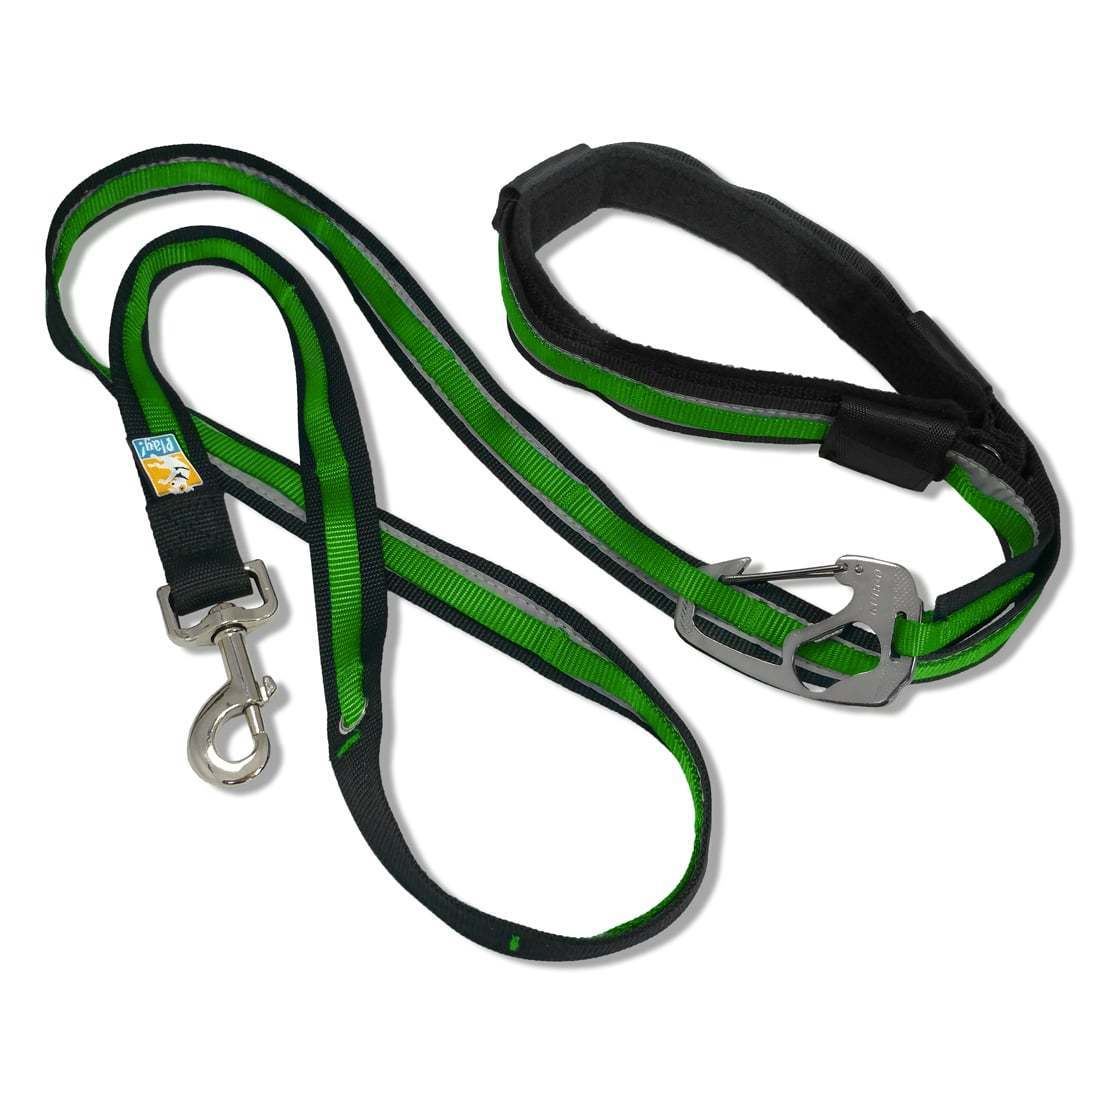 Kurgo Quantum 6-In-1 Dog Leash